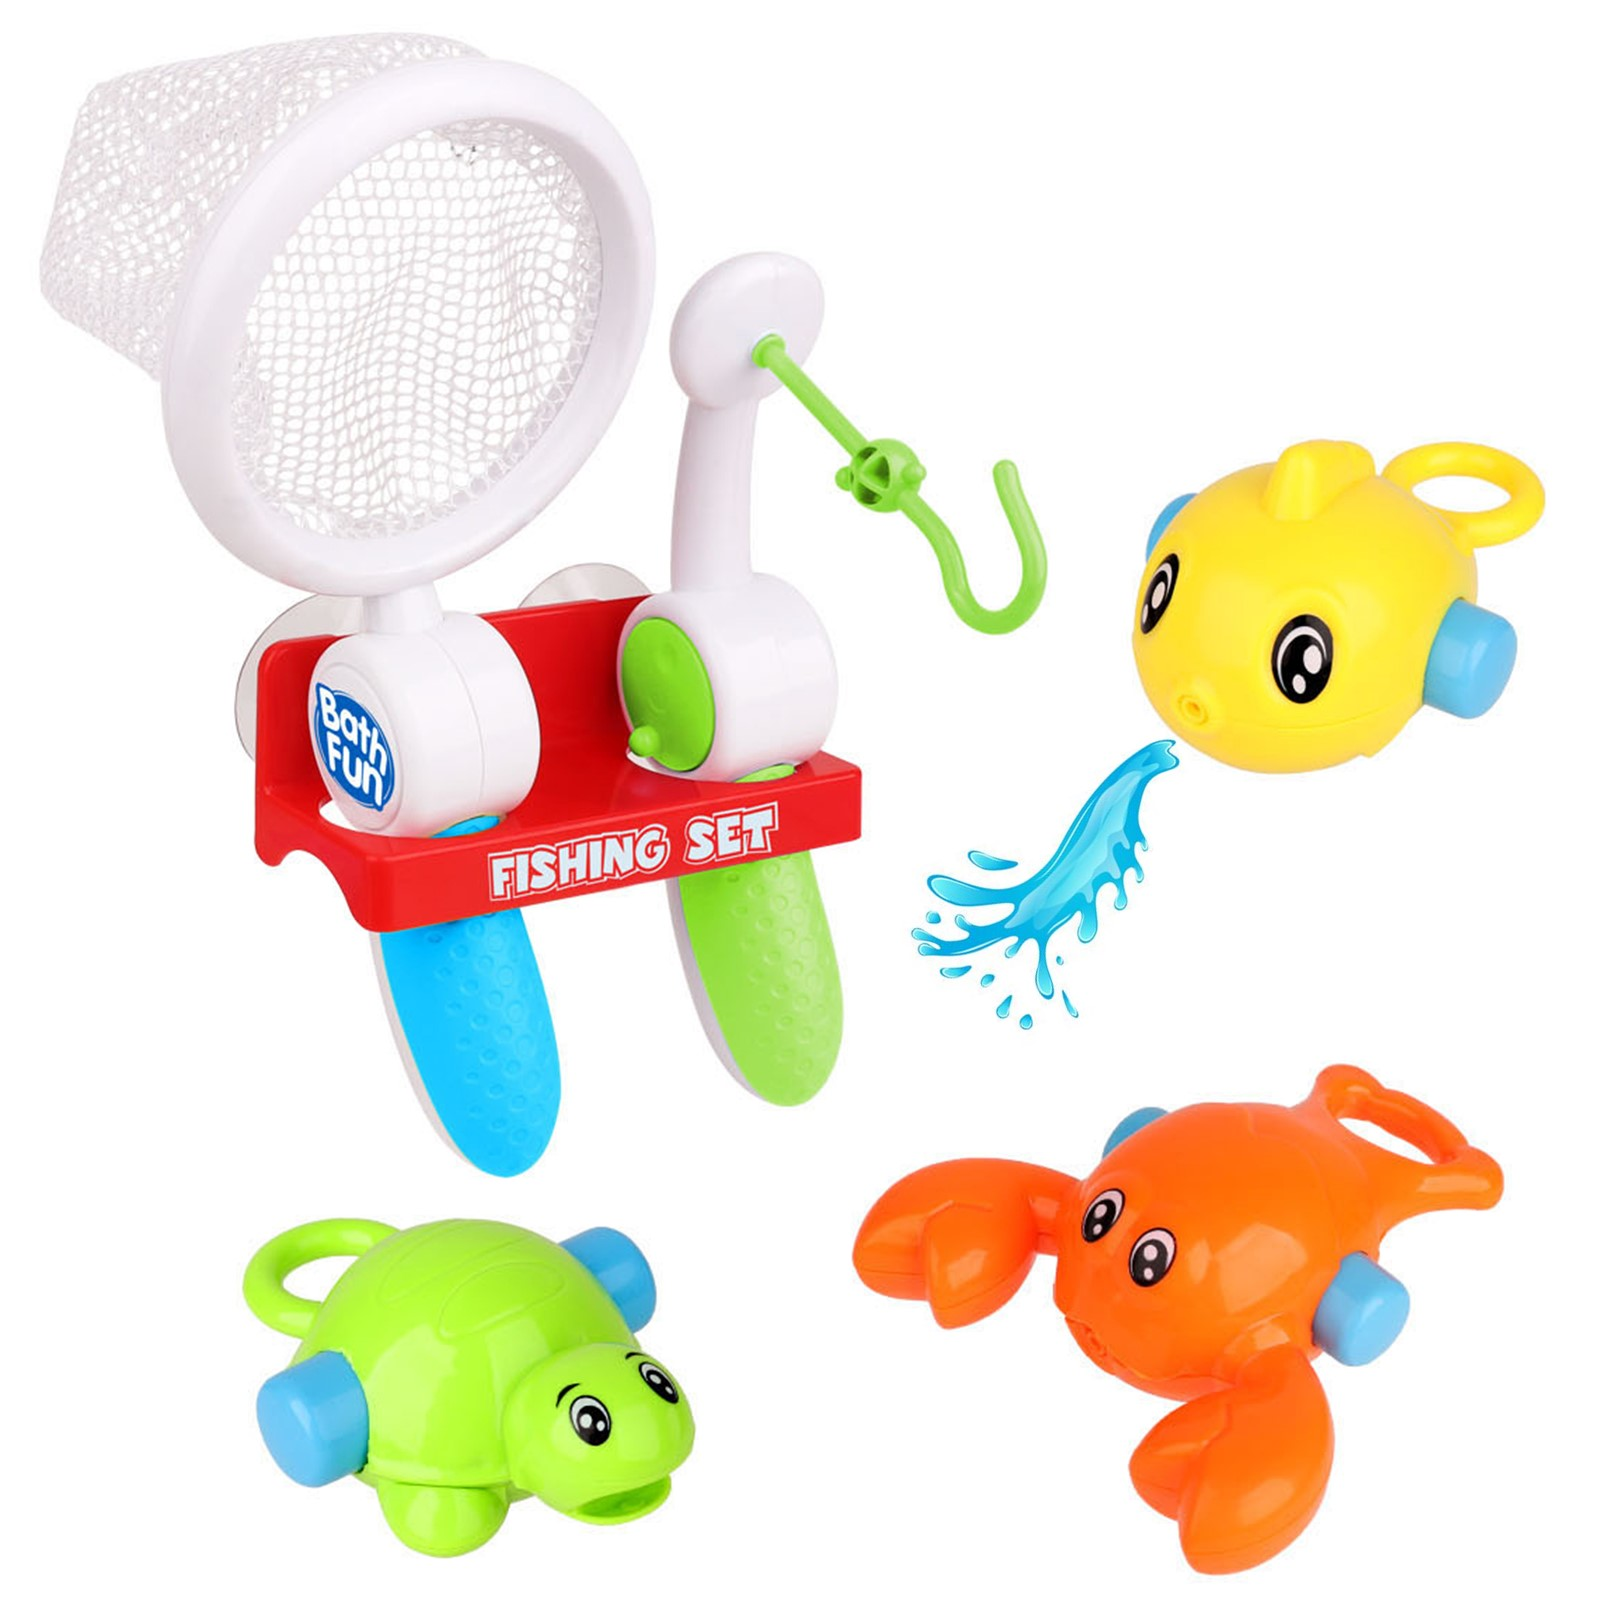 Bath Toy Fishing Set Includes Fish Turtle Crab Rod And Net For Toddler Baby And Young Children Perfect For Bathtub Or Beach Day Water Fun Educational Functional Interactive Kids Play Toys Boosts Imagination And Creativity